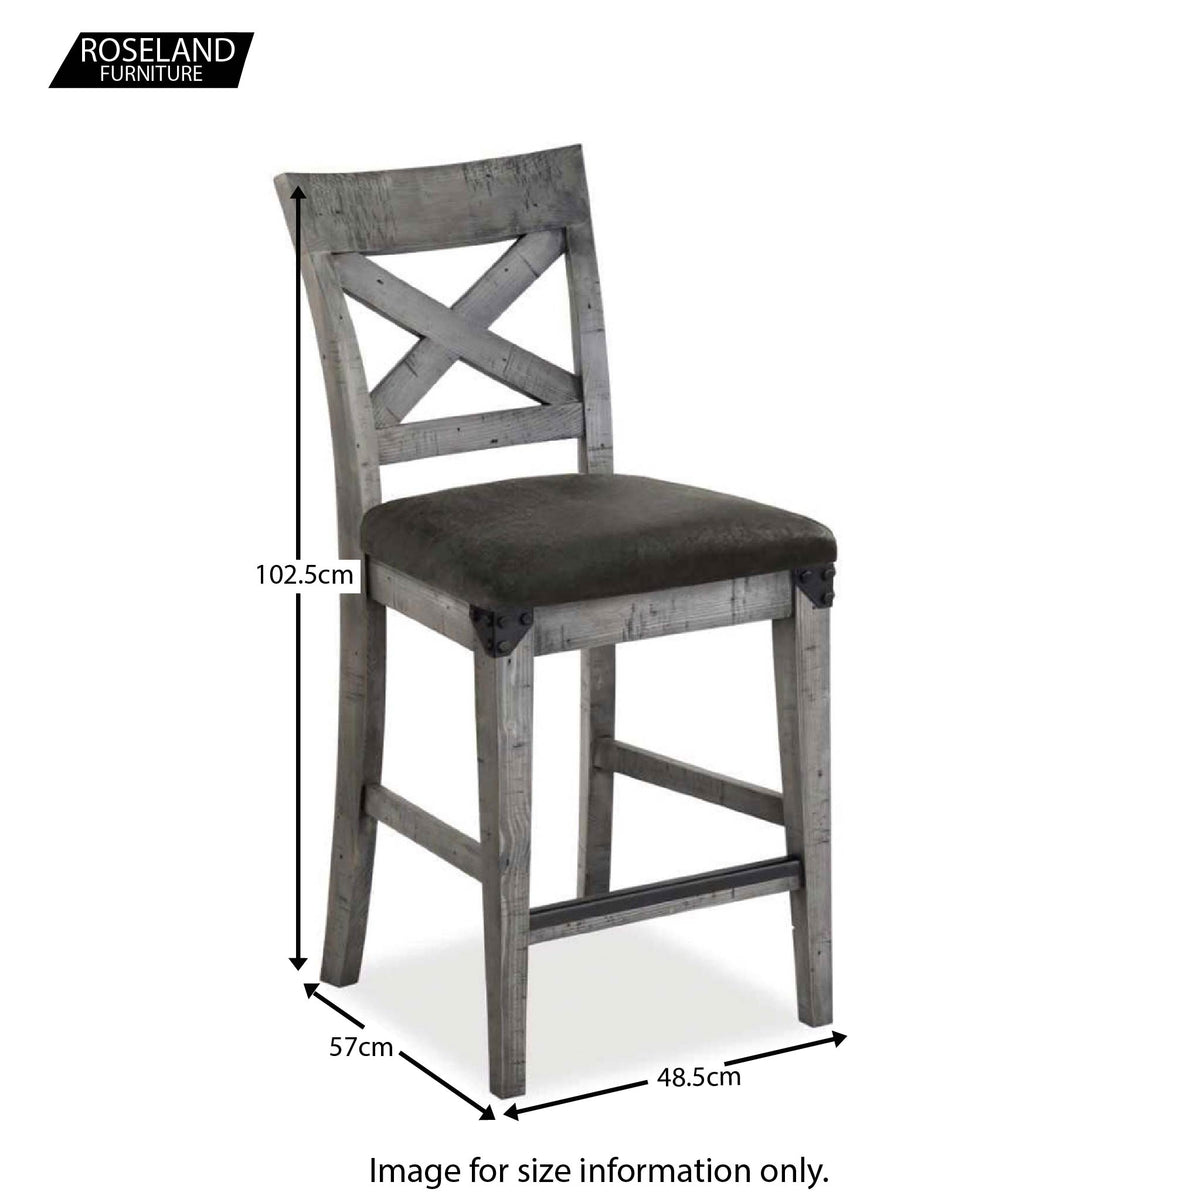 Dimensions for the Brooklyn Industrial Grey Bar Chair Stool